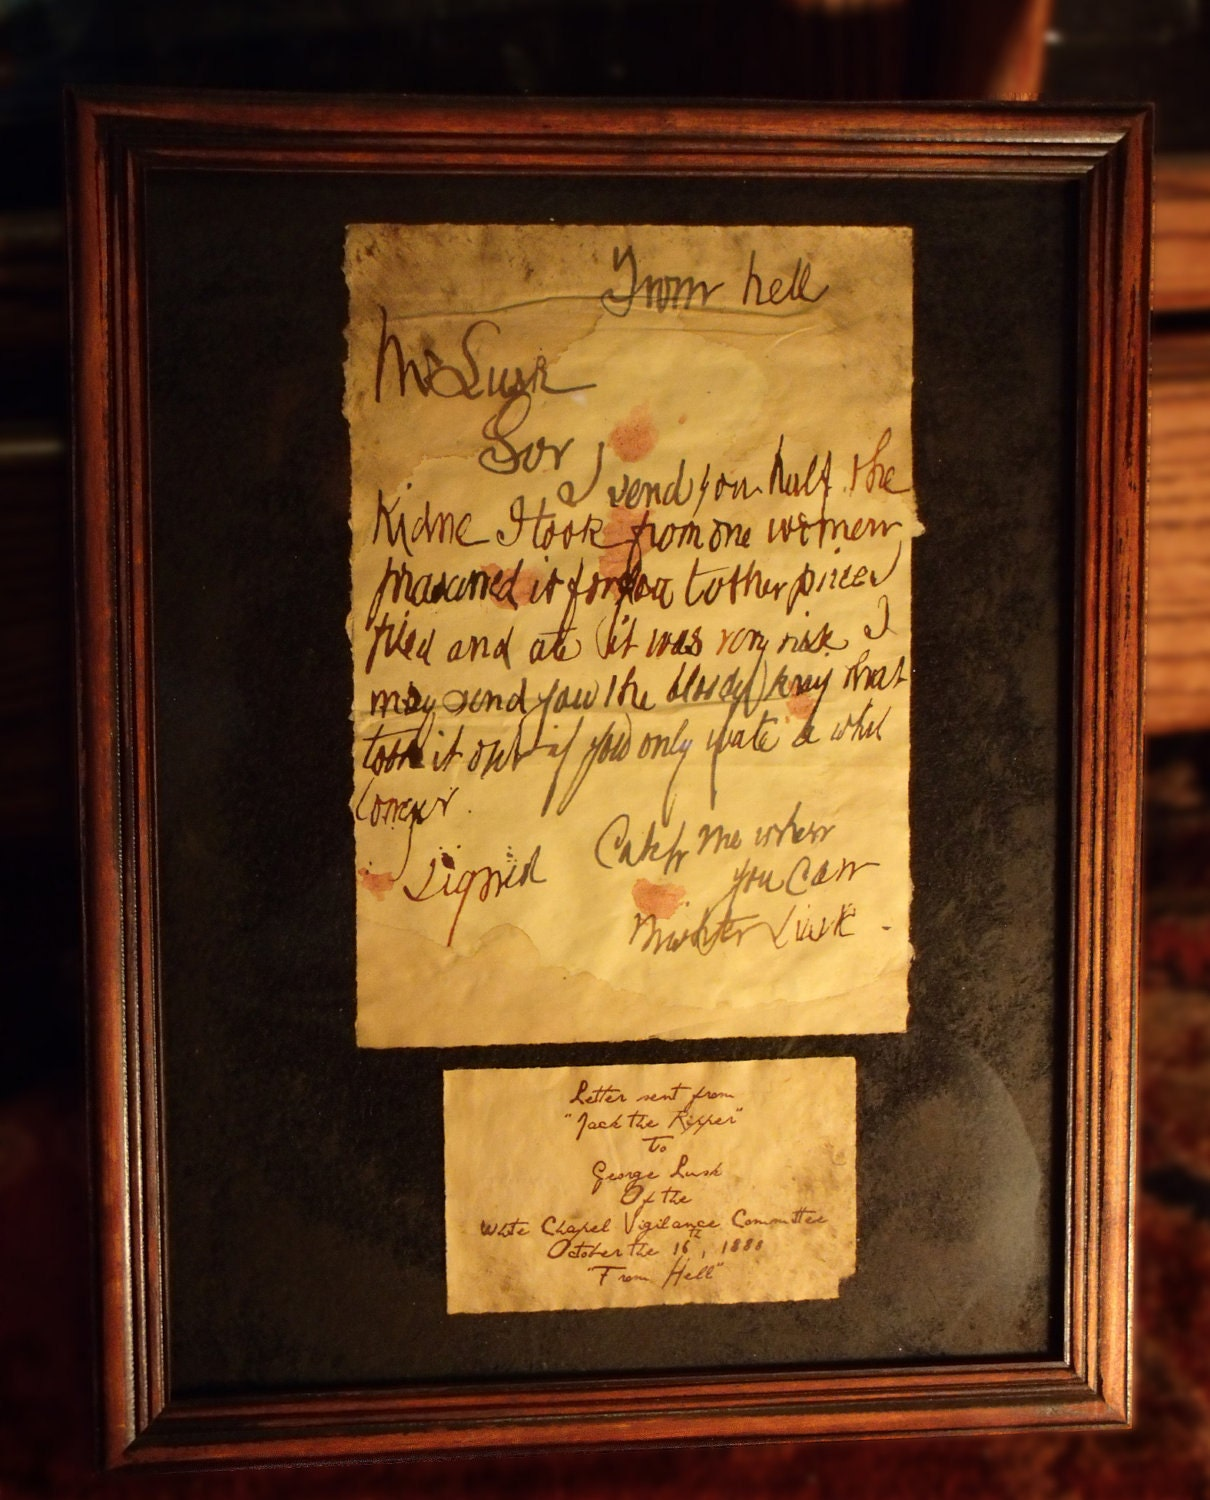 Jack the Ripper From Hell Letter framed. by TheRagNBoneEmporium